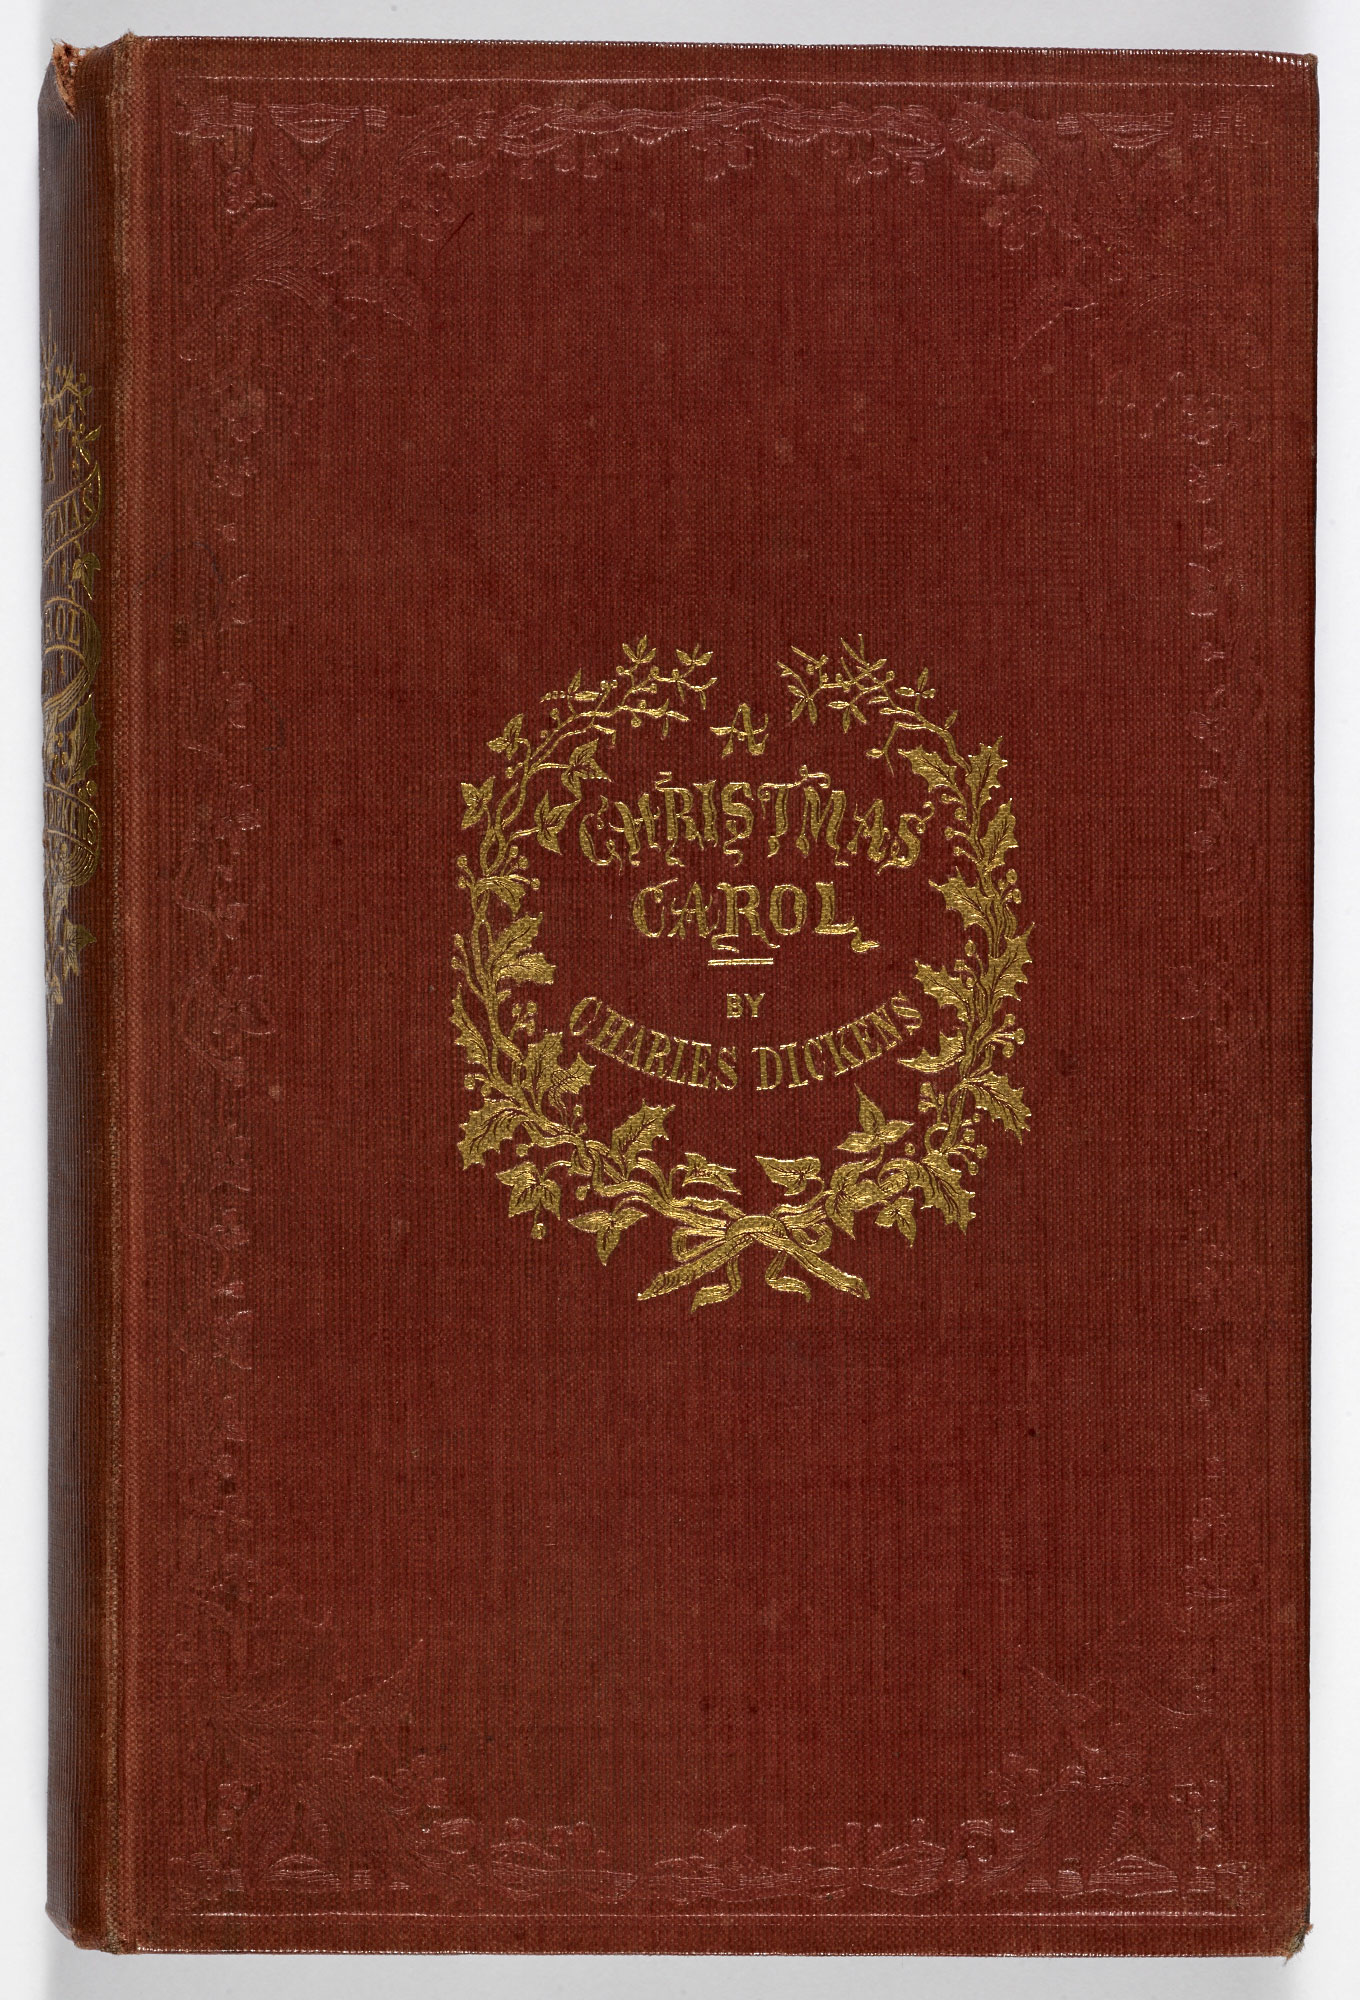 First edition of A Christmas Carol